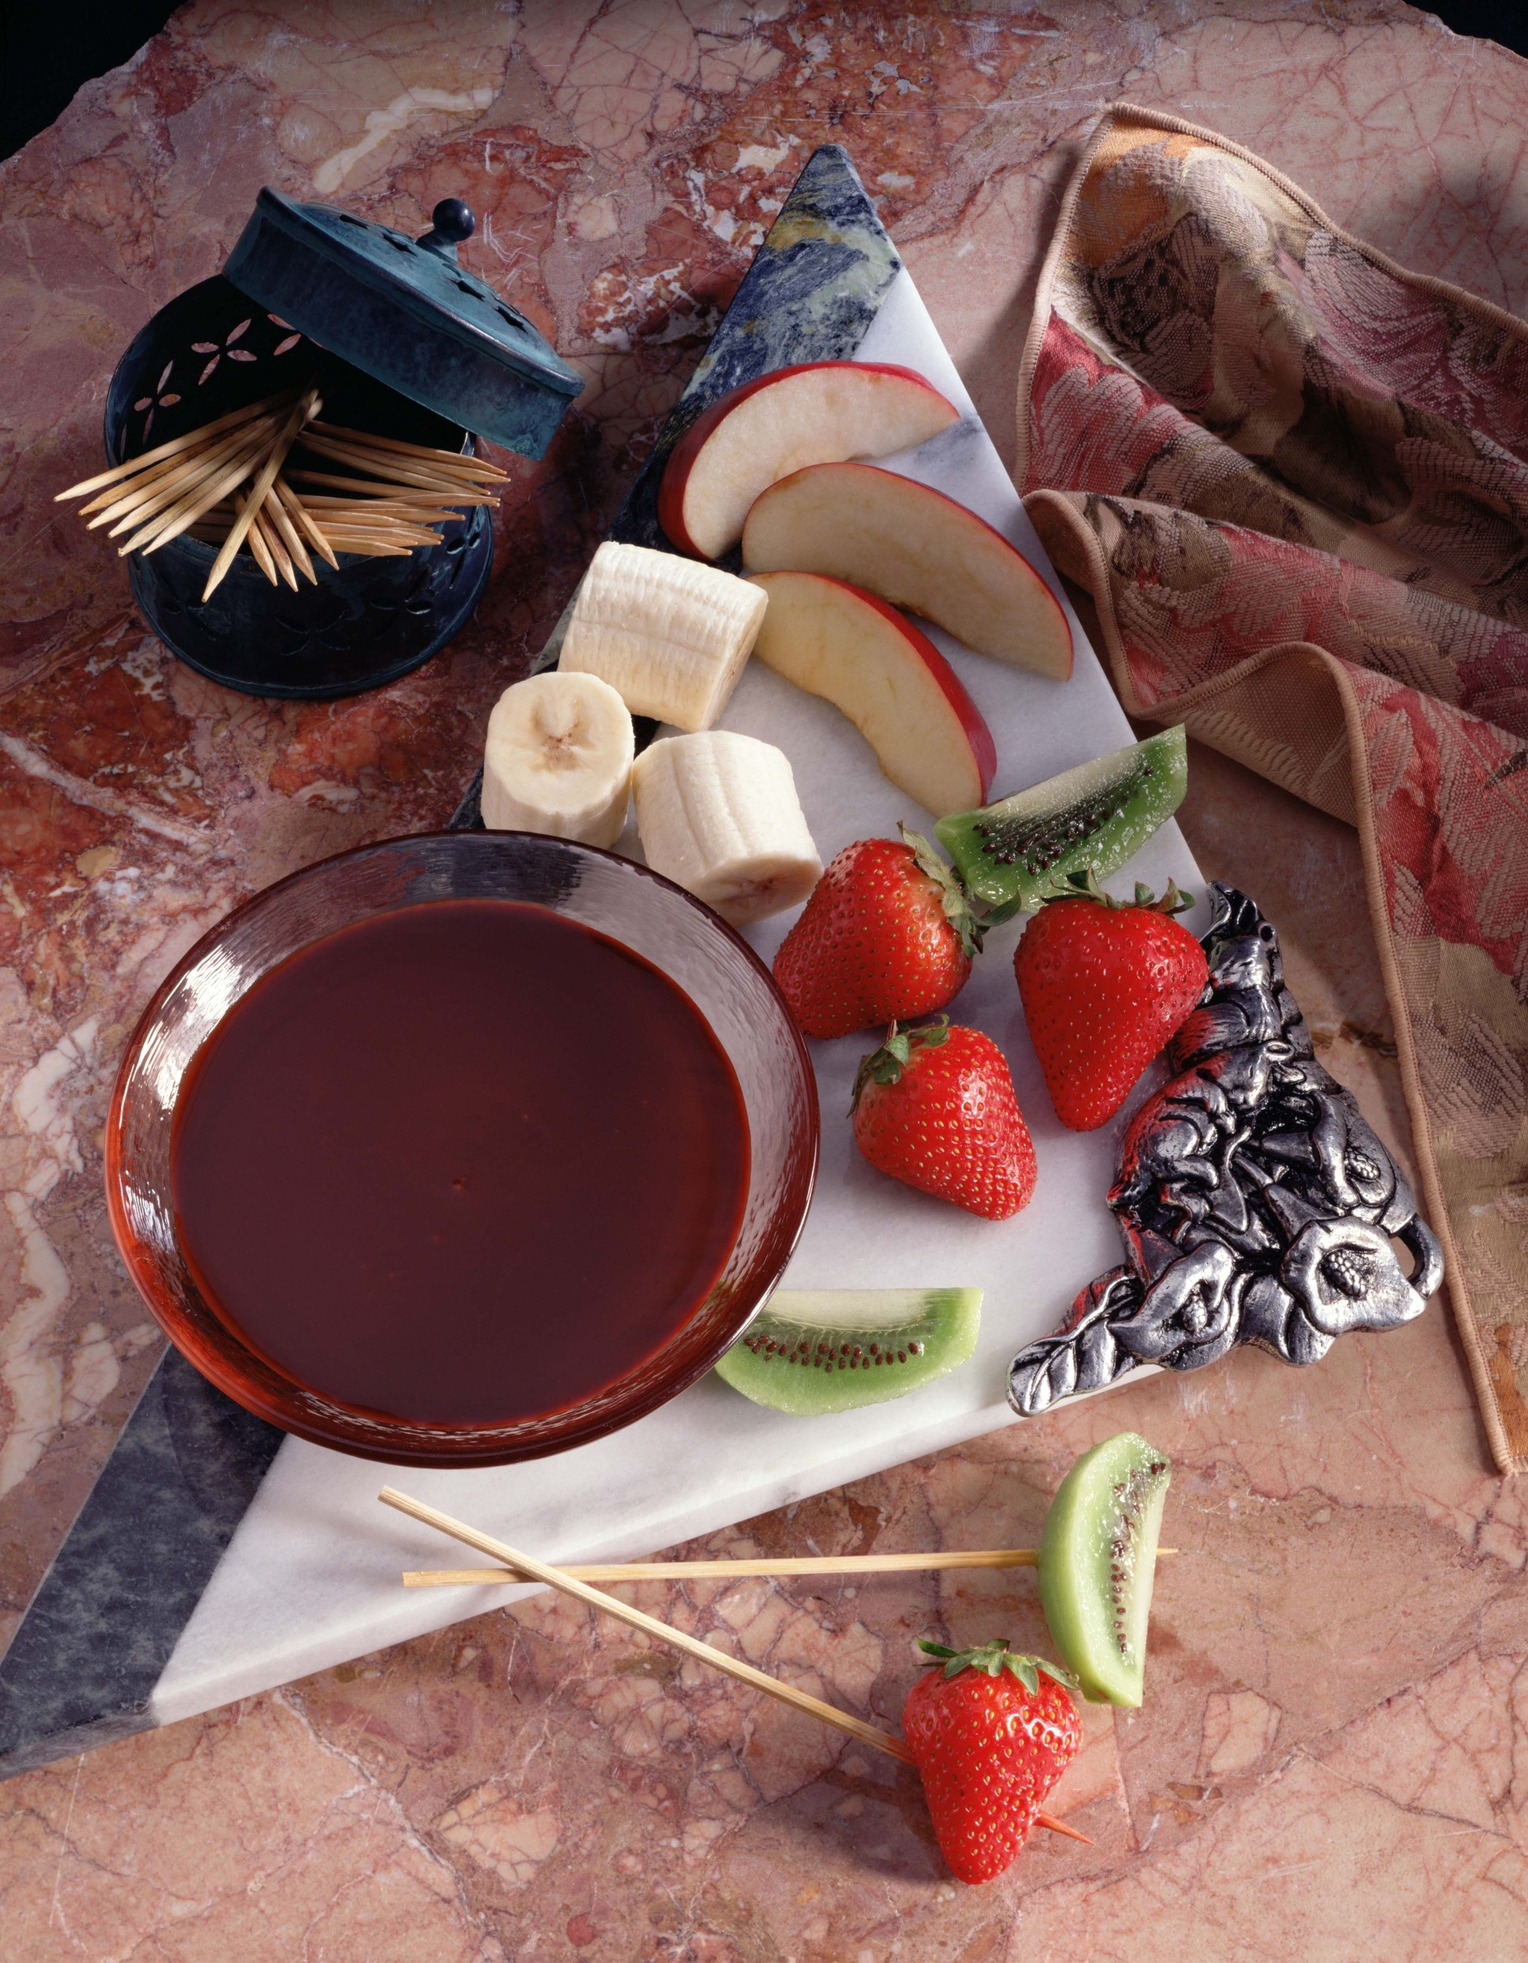 Fruit with chocolate fondue